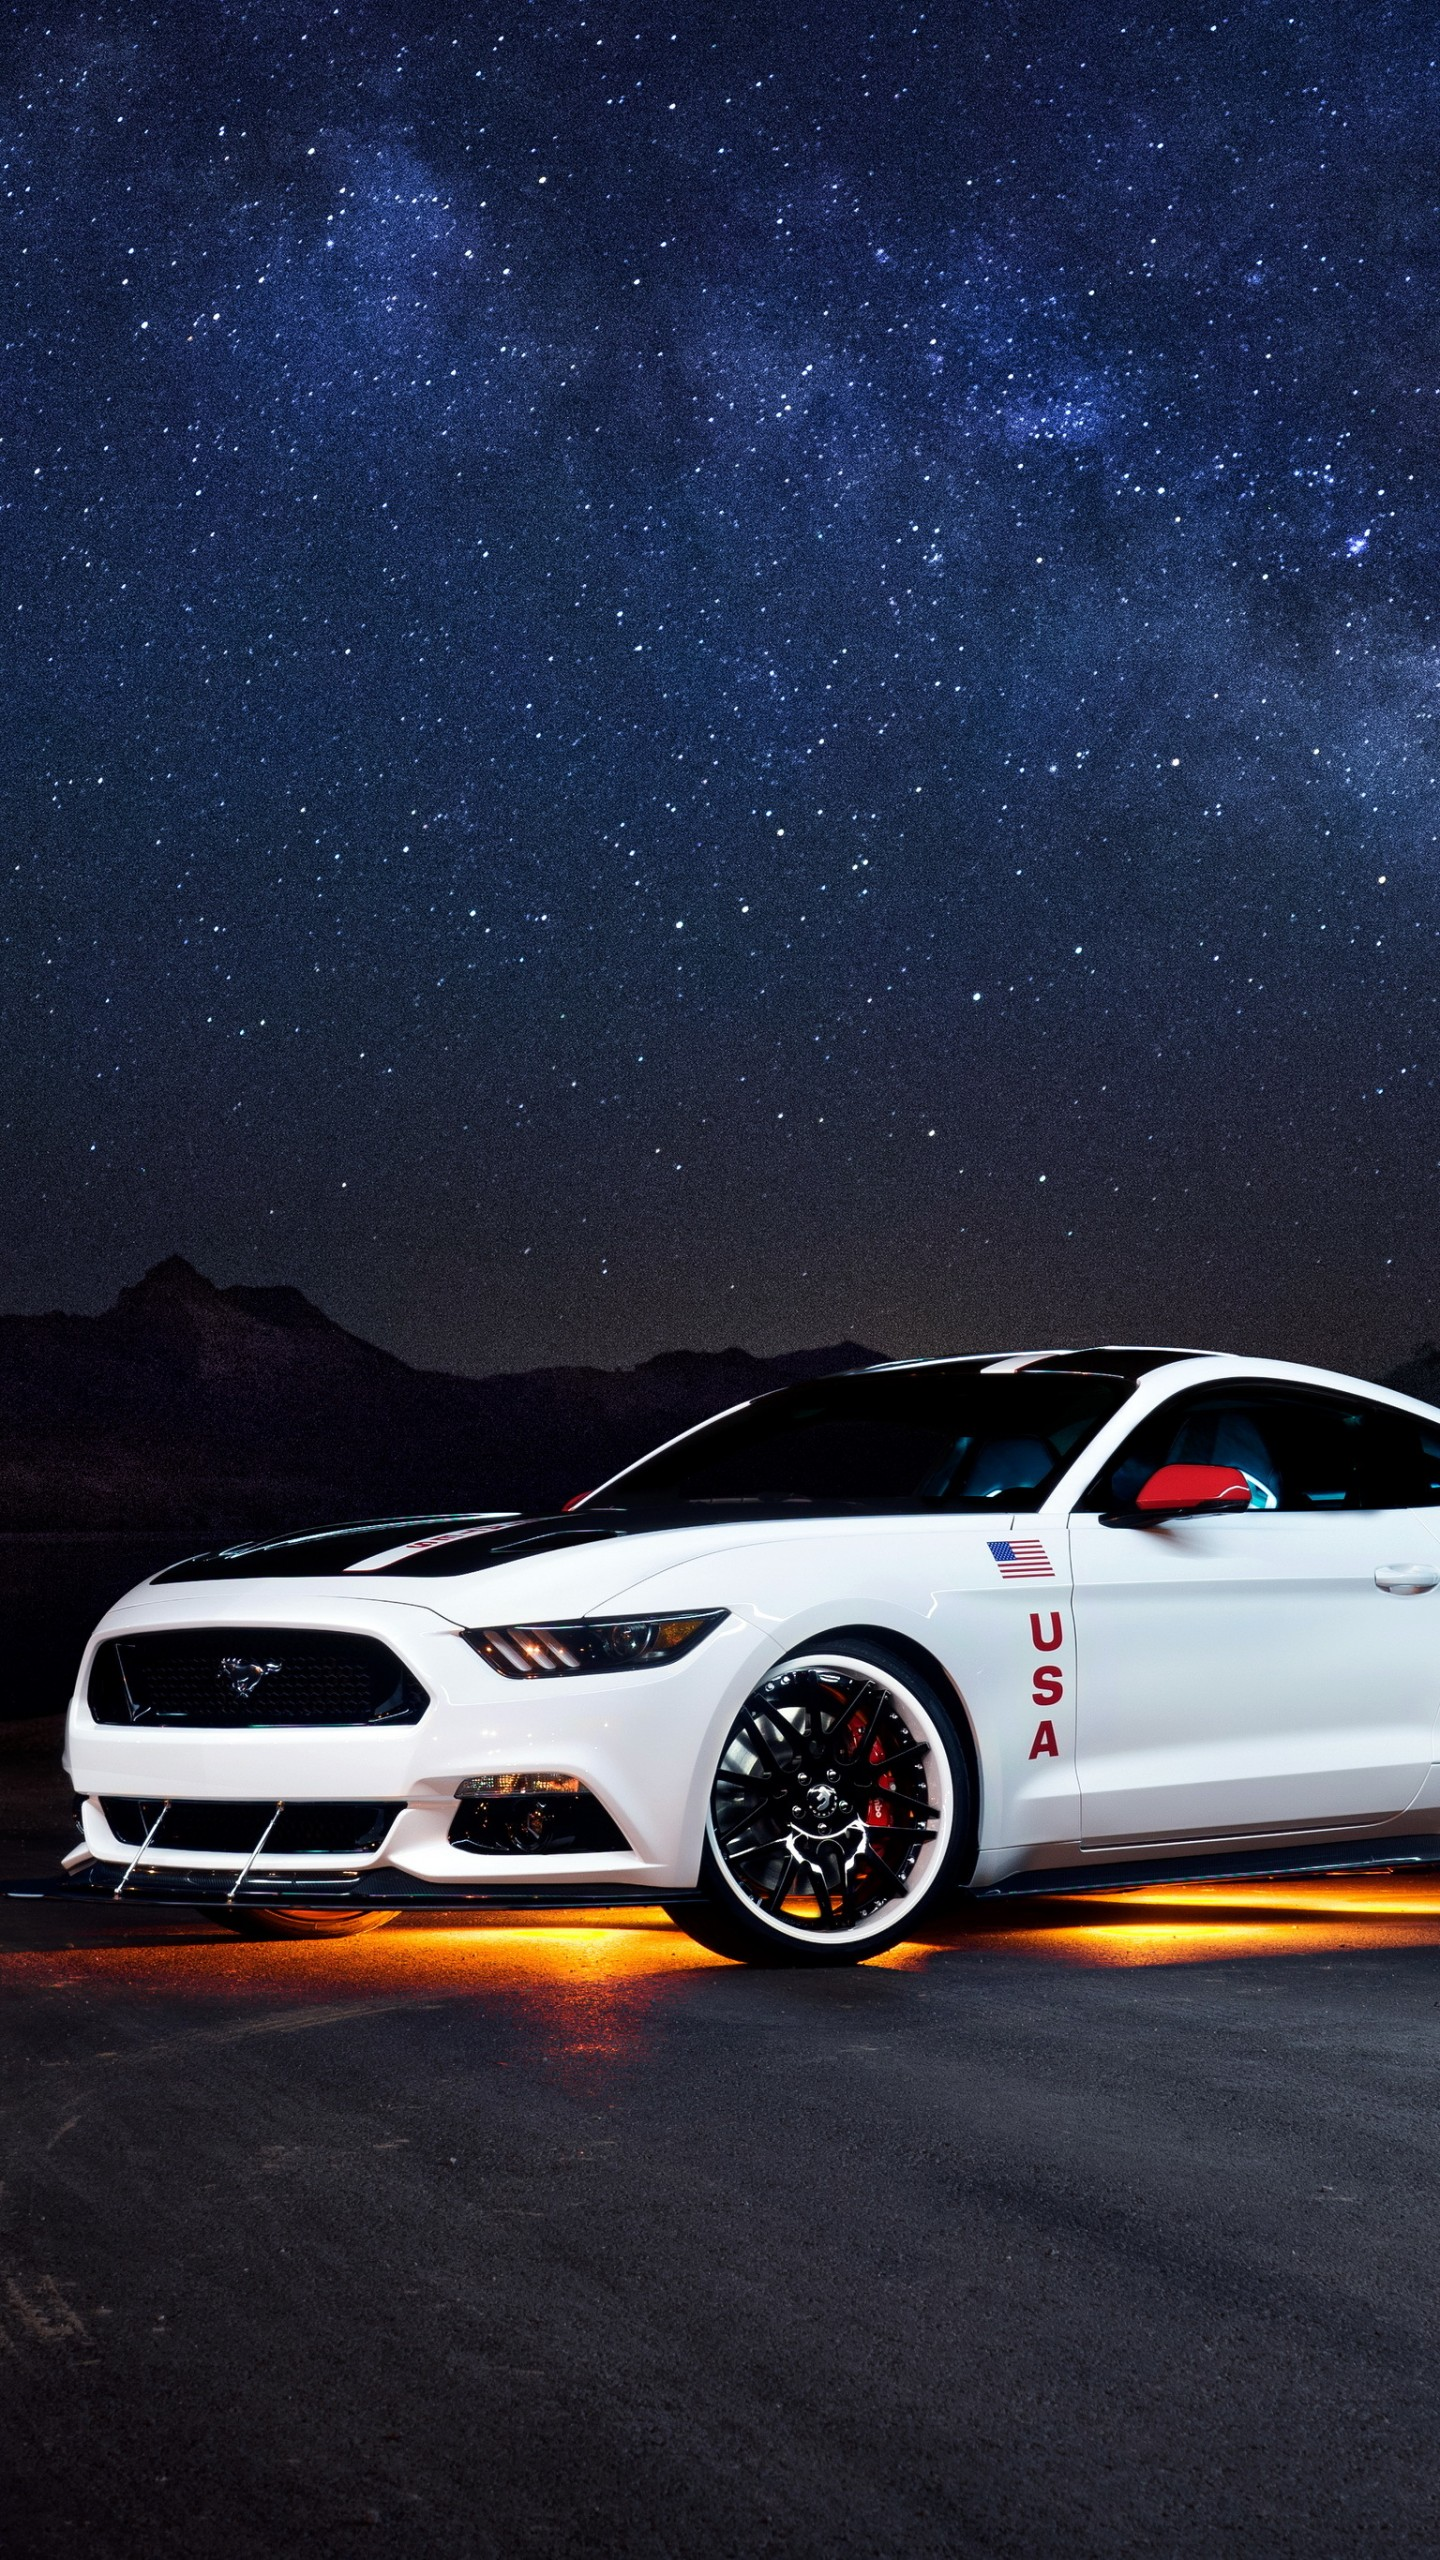 Wallpaper Ford Mustang Apollo Edition Mustang White